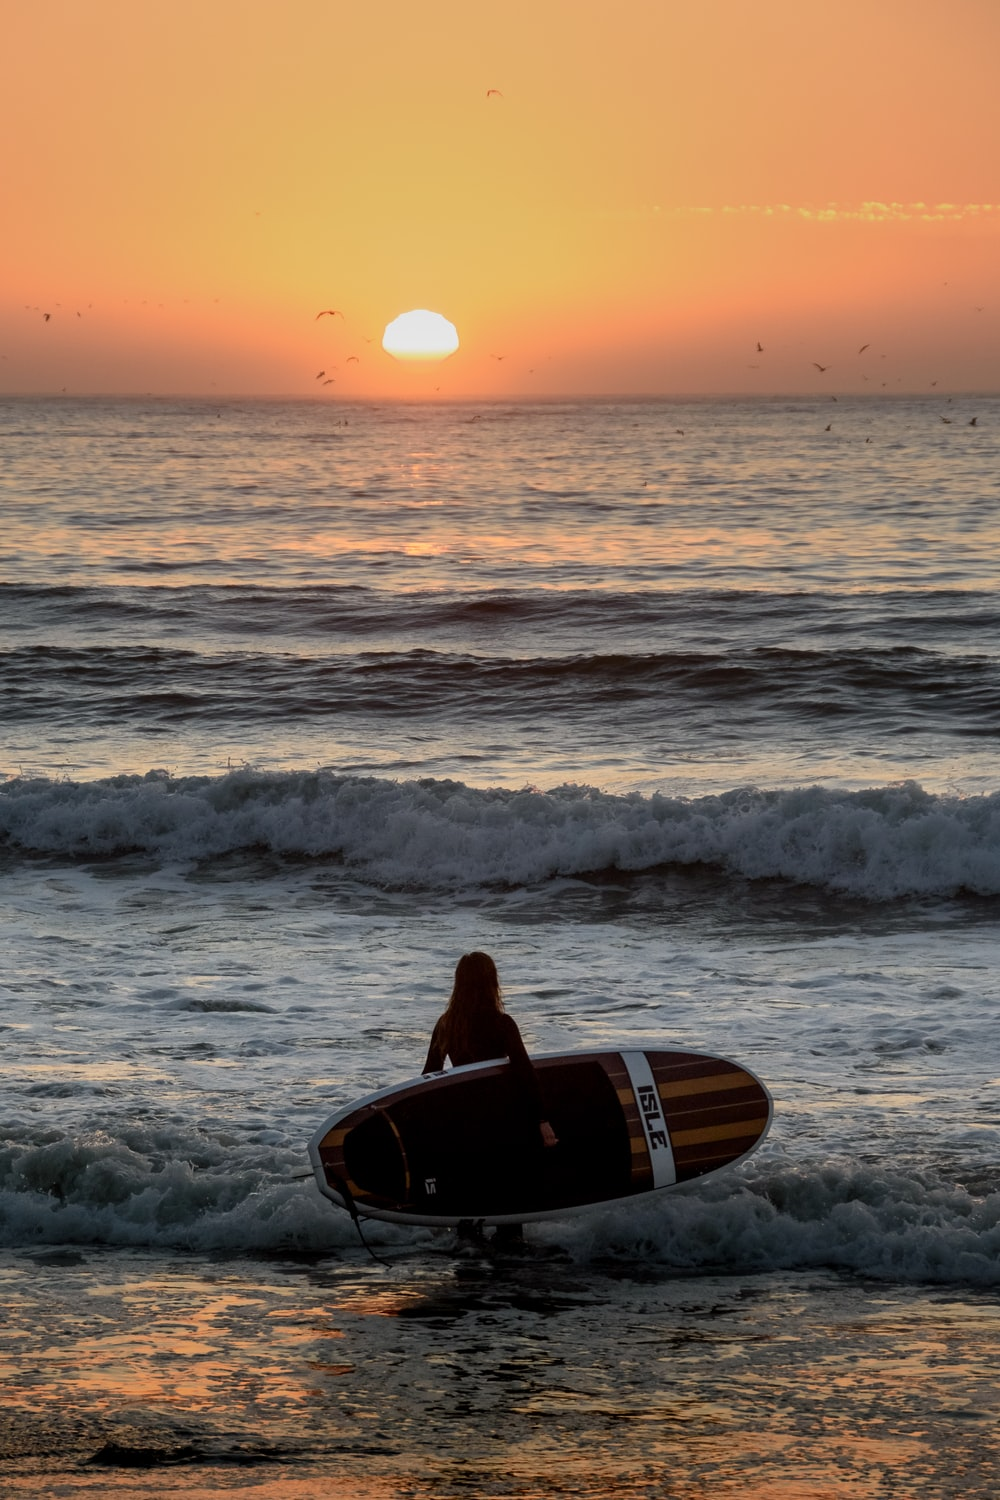 person carrying surfboard on seashore during sunset